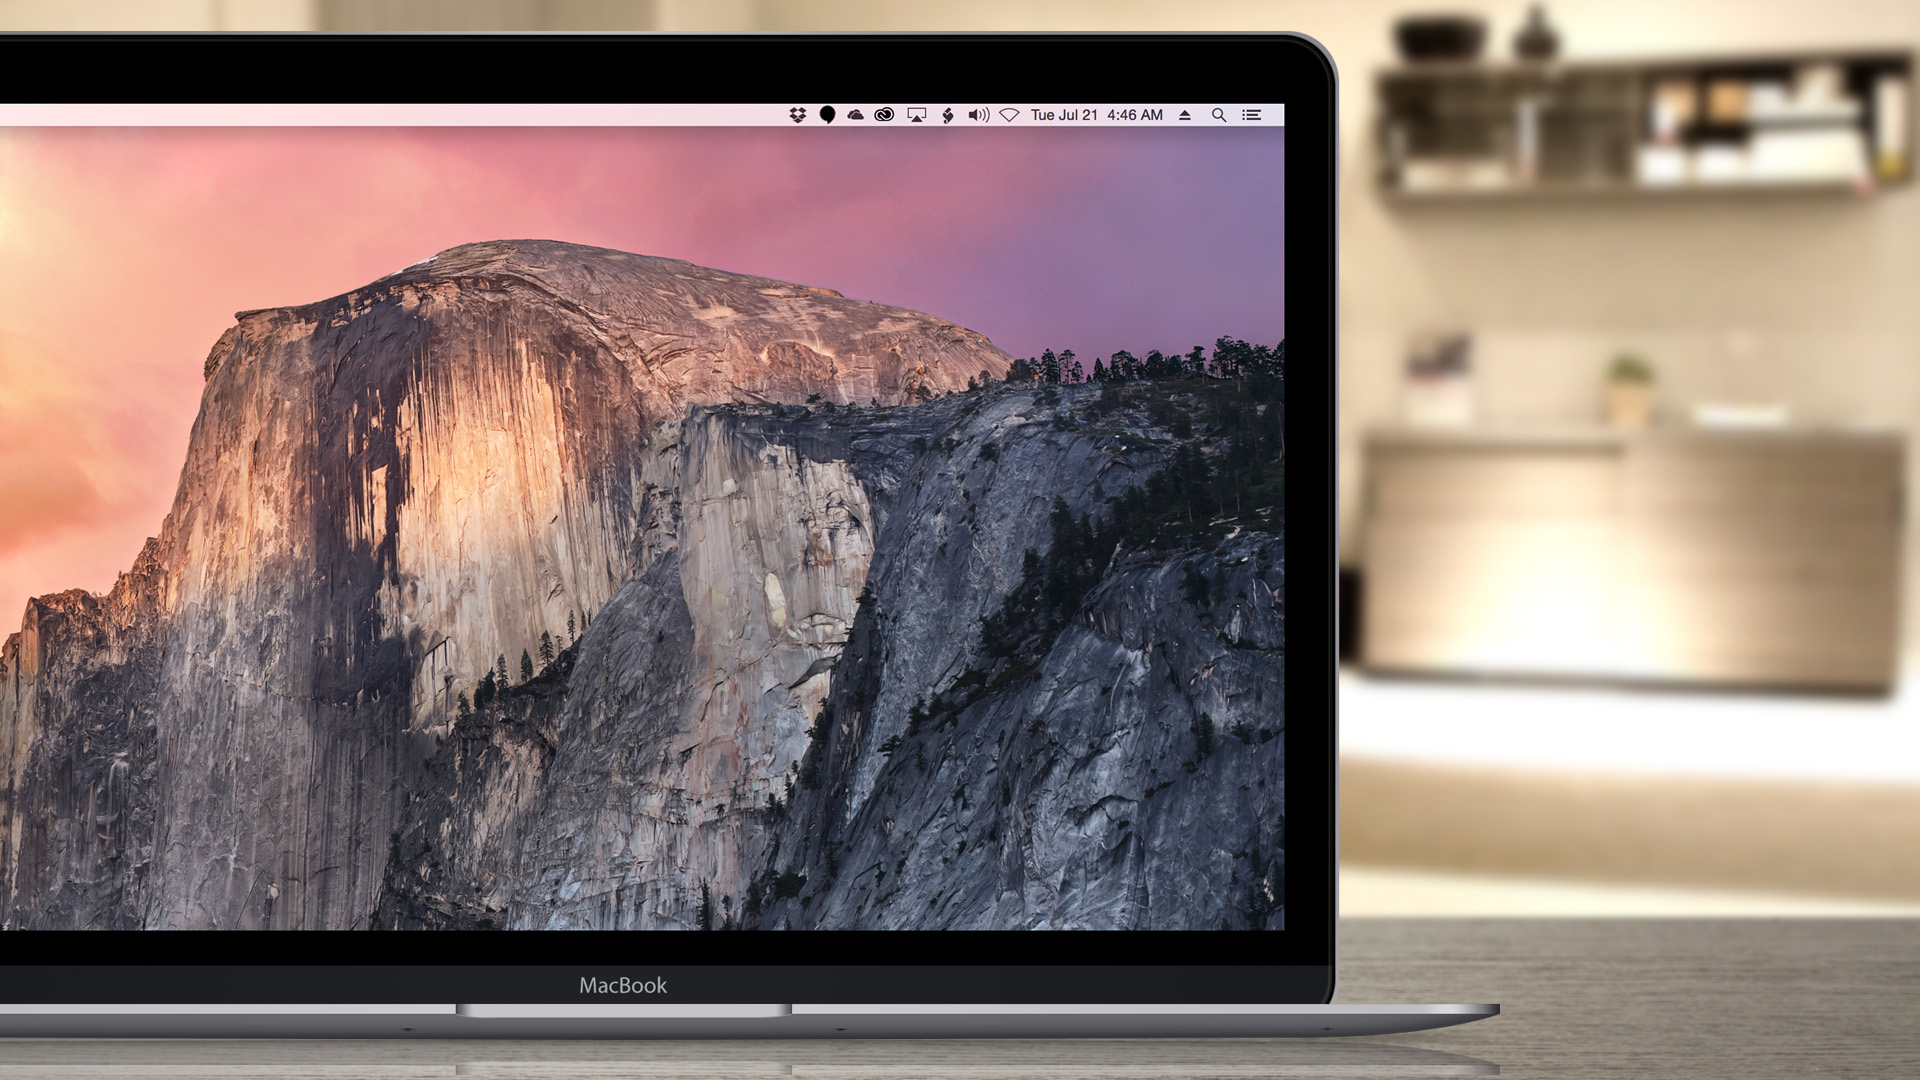 Mac owners are in no hurry to update to OS X El Capitan